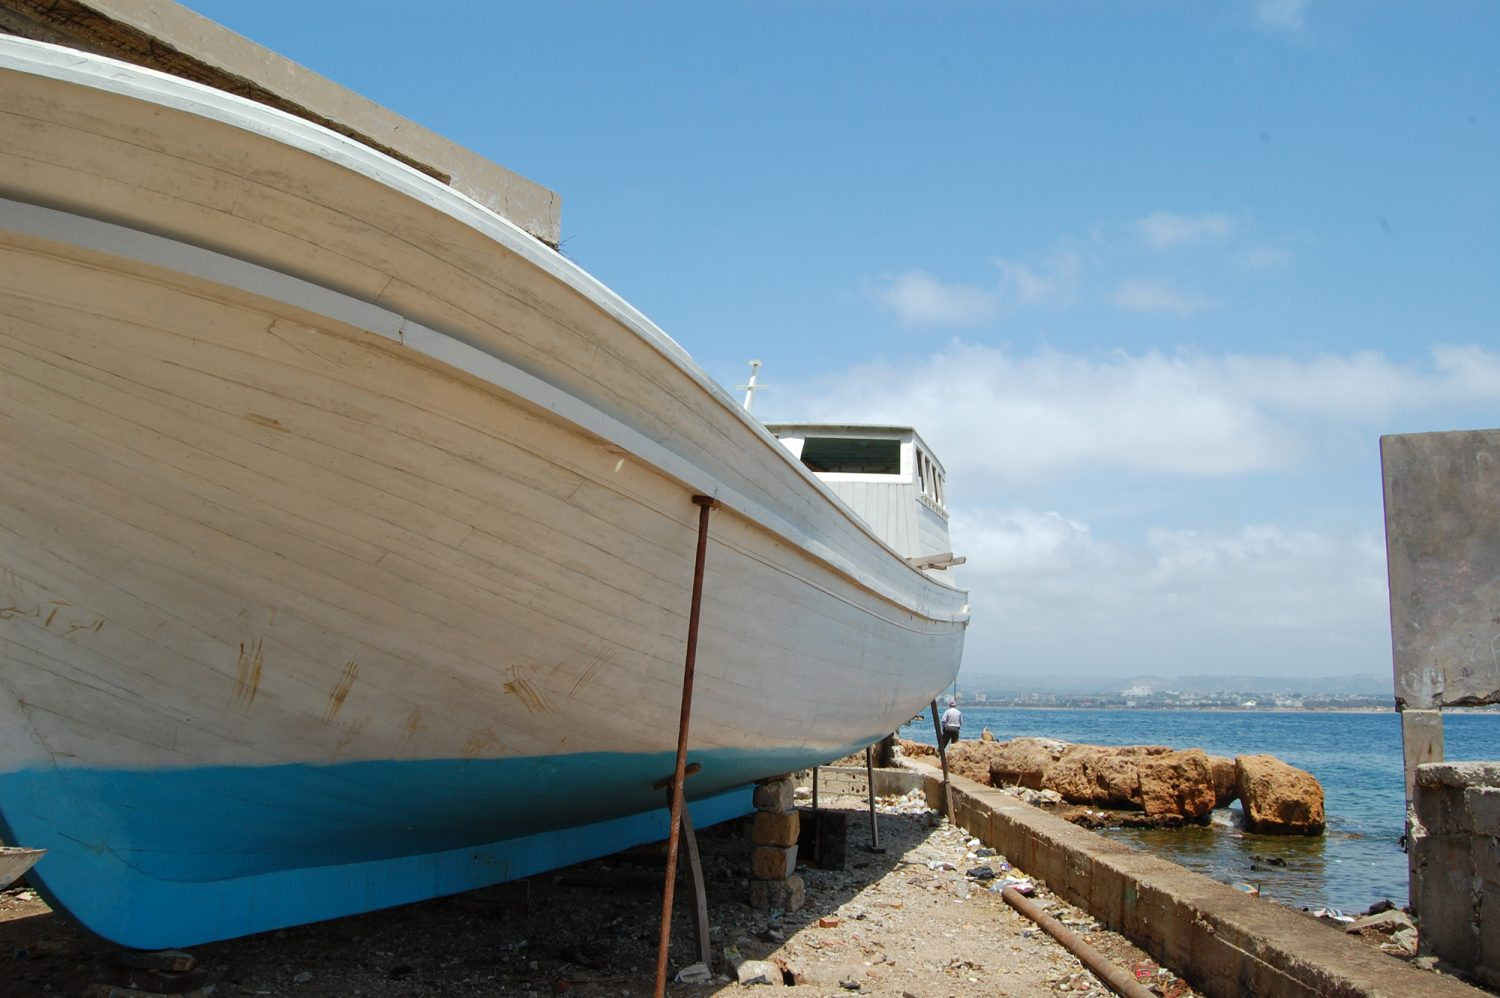 A boat on Arwad Island, ready to return to the sea